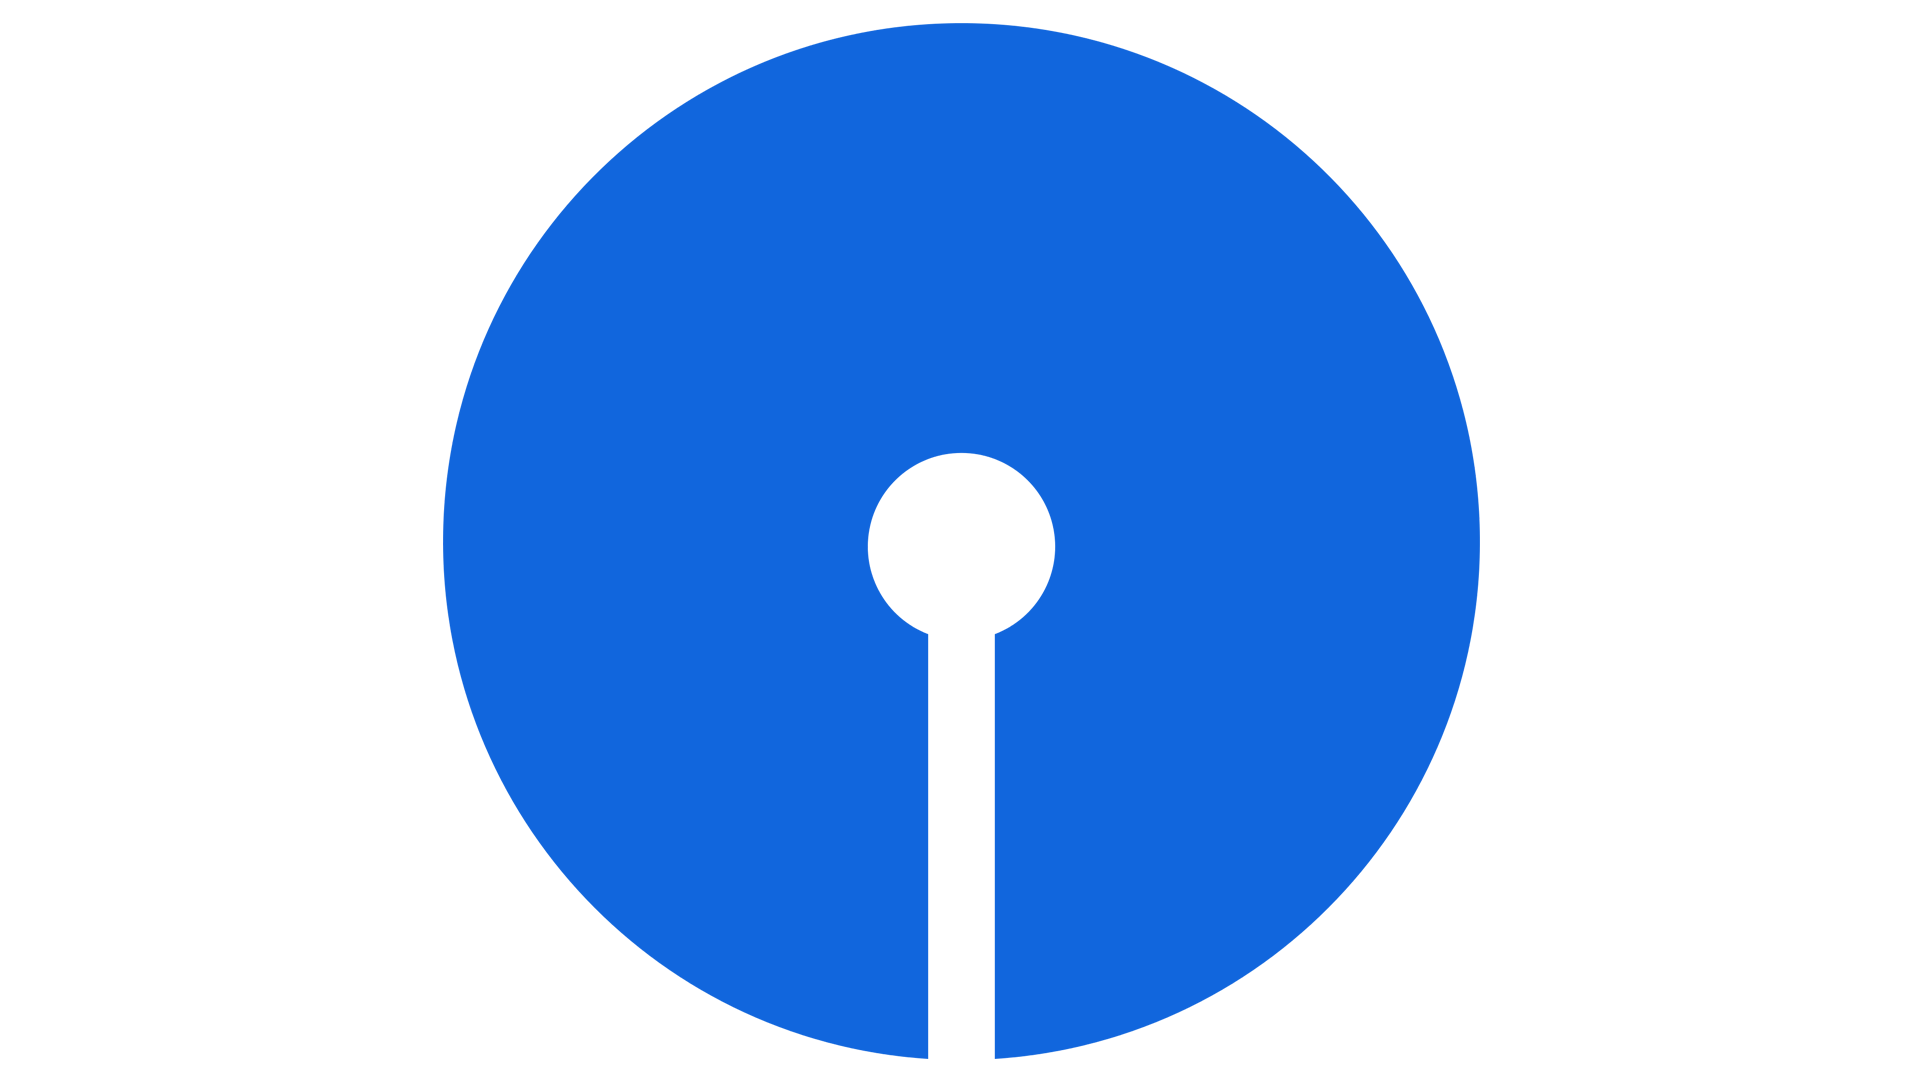 Sbi Logo Sbi Symbol Meaning History And Evolution